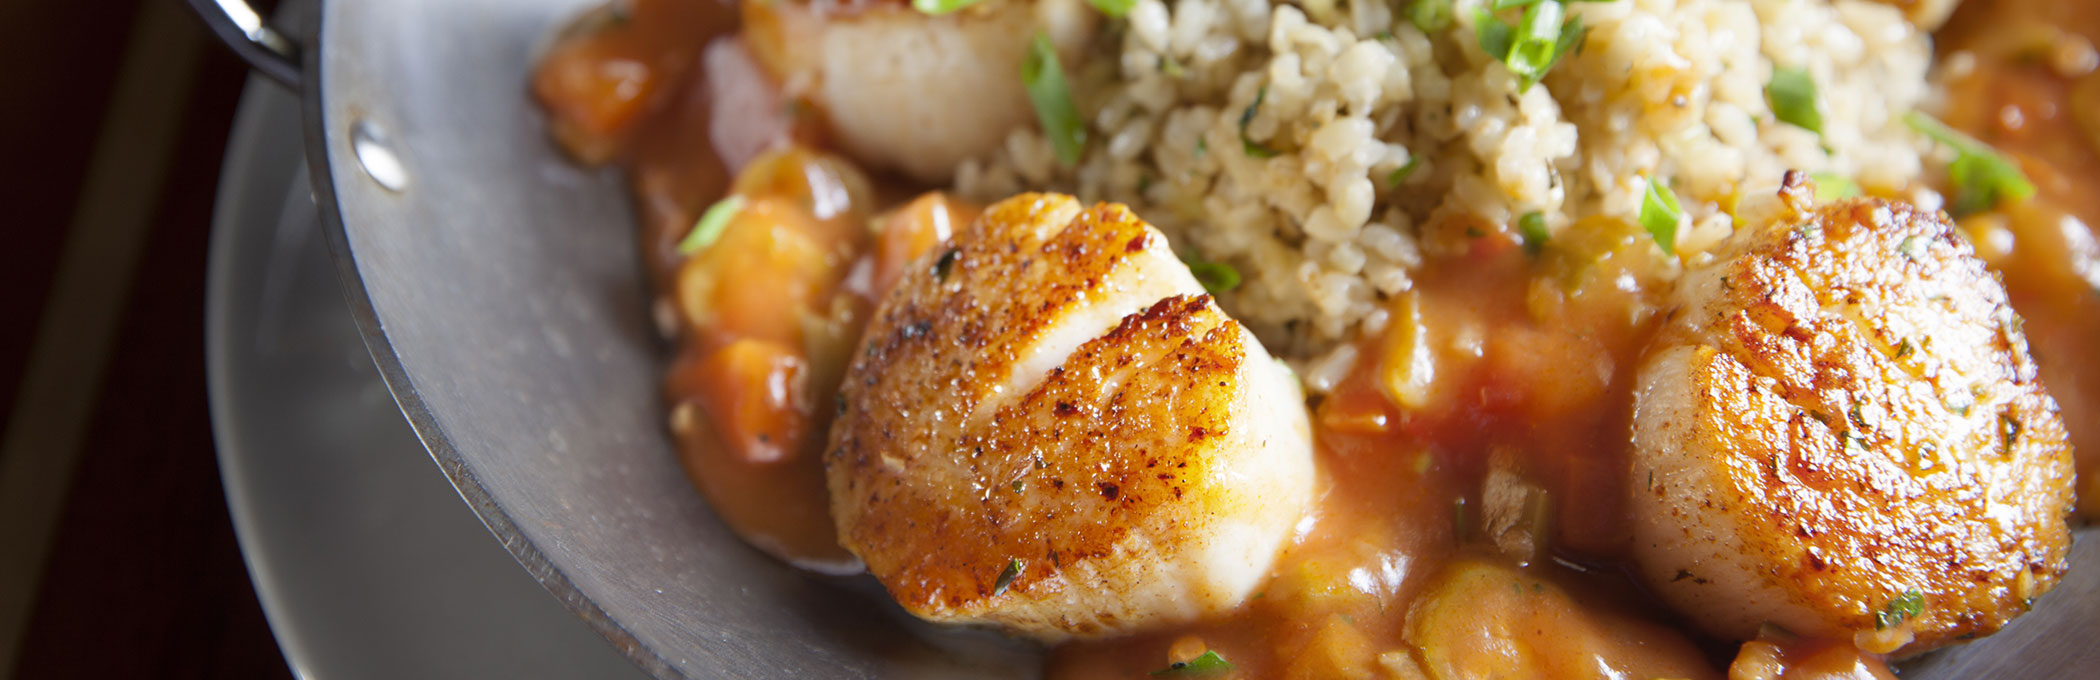 Dish with scallops